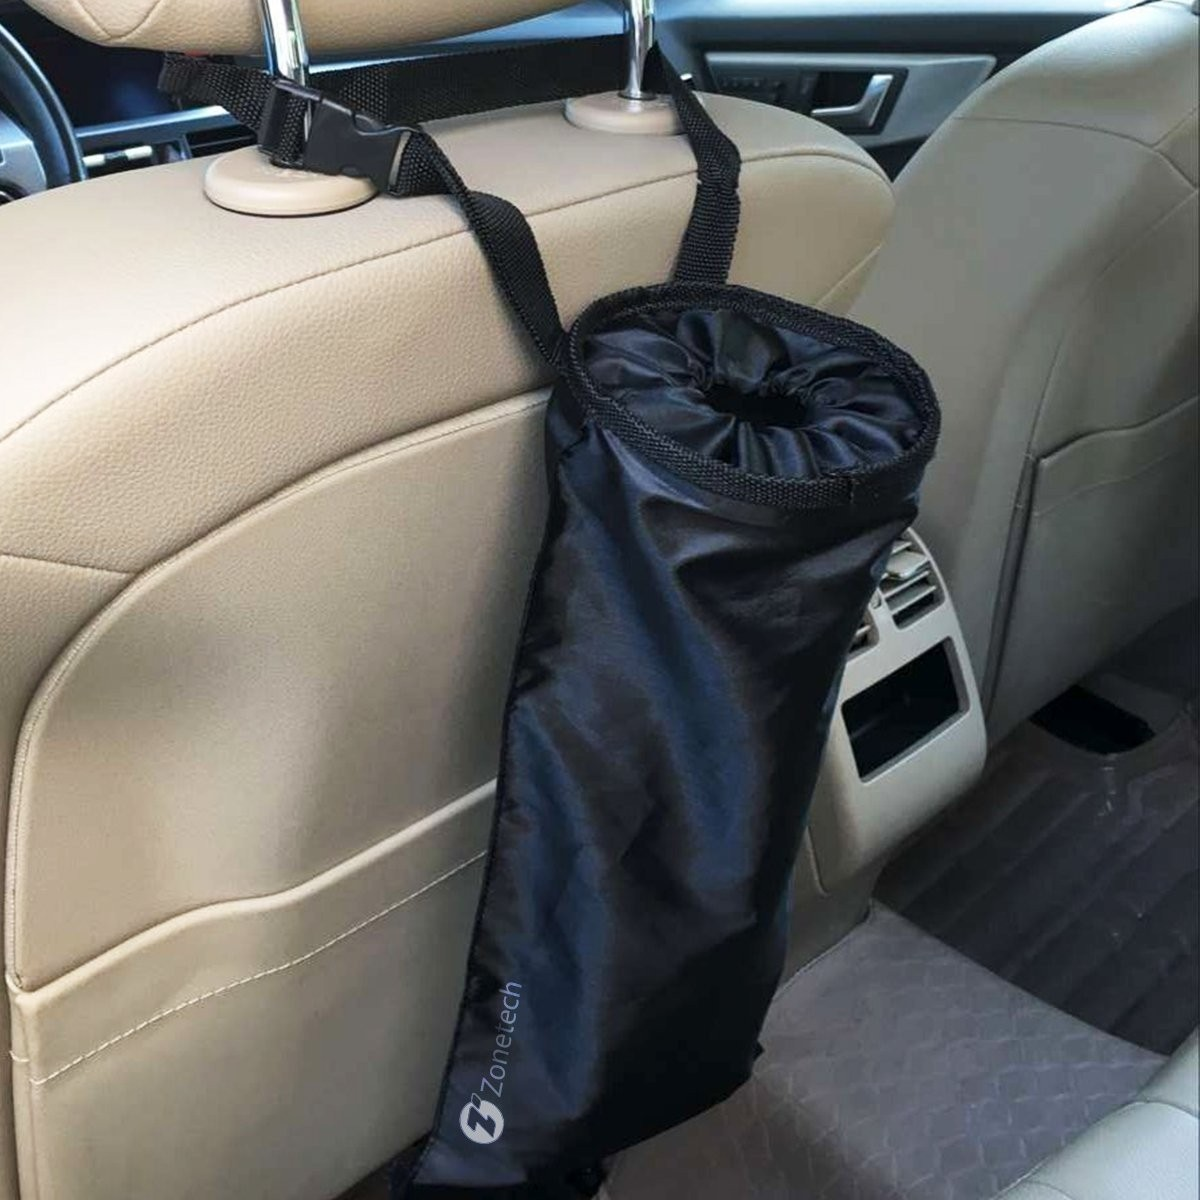 Zone Tech Vehicle Backseat Headrest Litter Bag Classic Black Premium Quality Universal Traveling Portable Car Trash Can